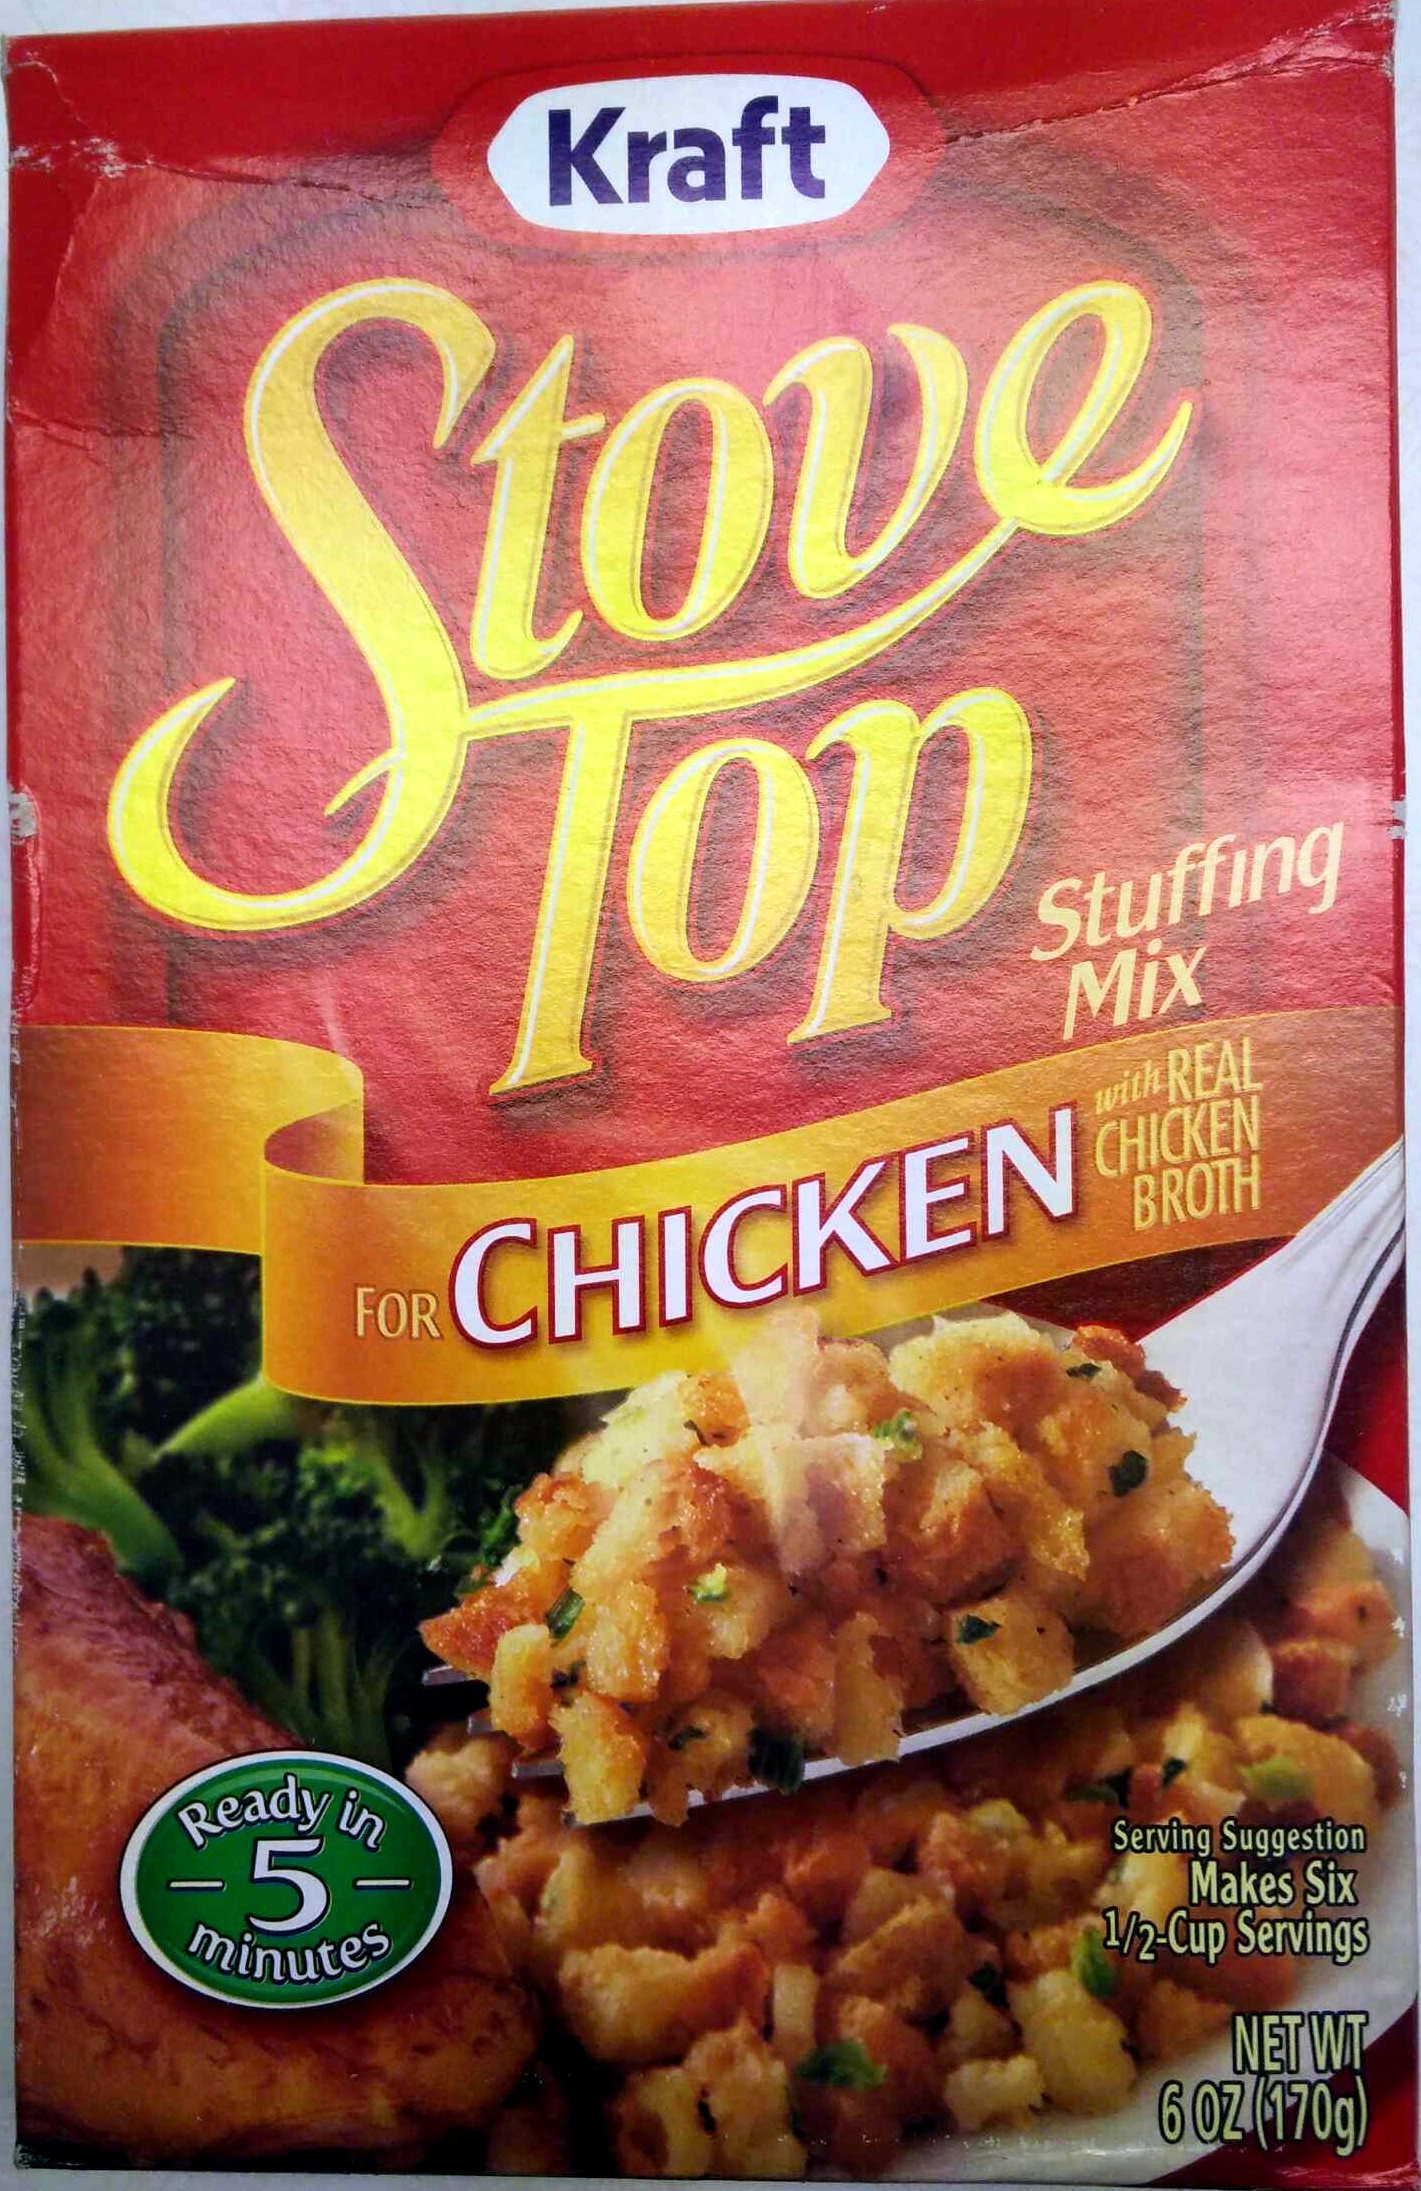 Stove Top Stuffing Mix for Chicken - Kraft - 6 OZ (170g)